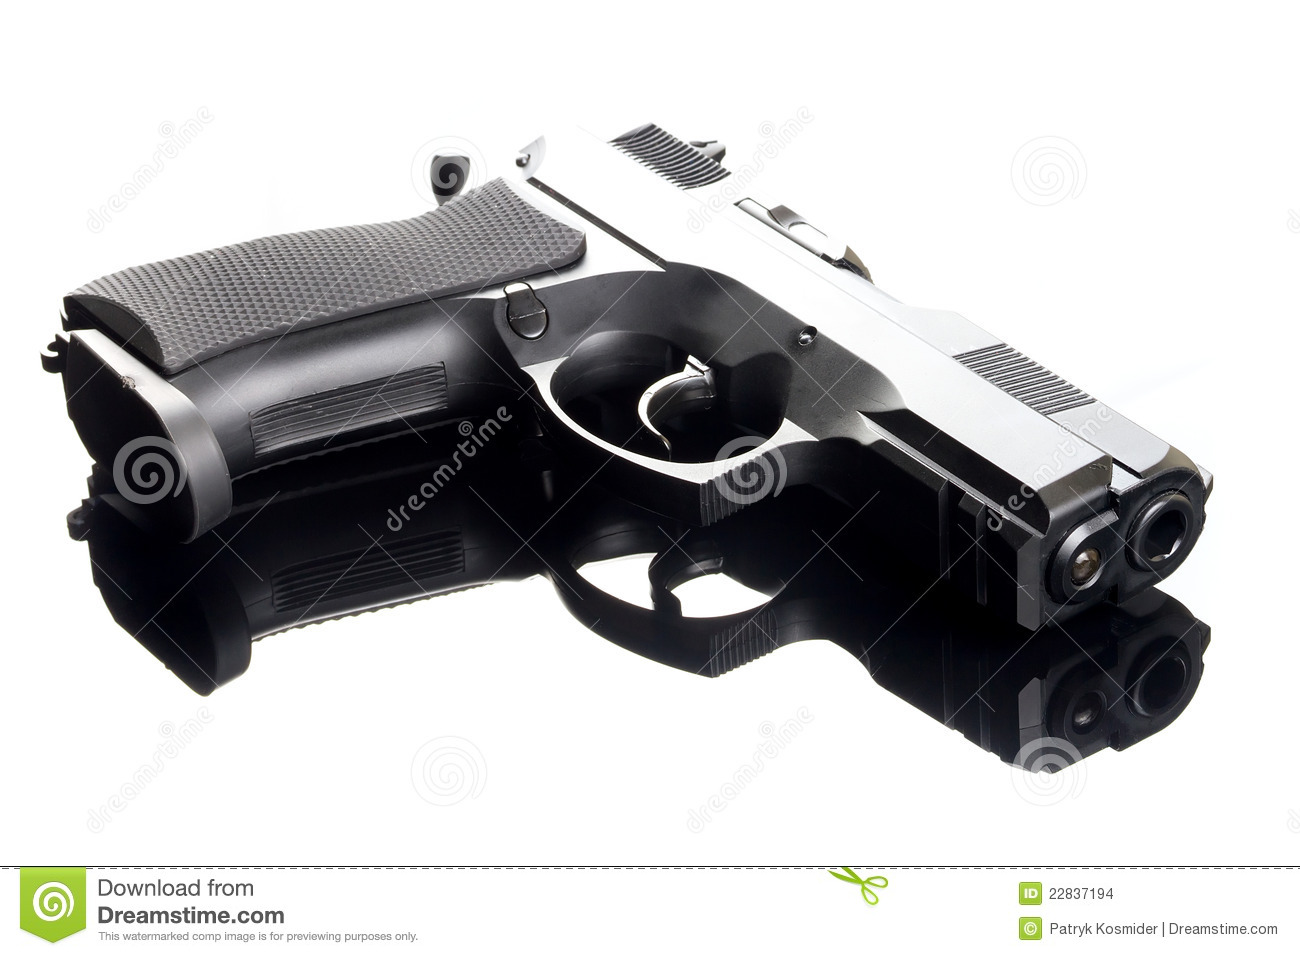 9 Mm Hand Gun On Glass Table Stock Images - Image: 22837194